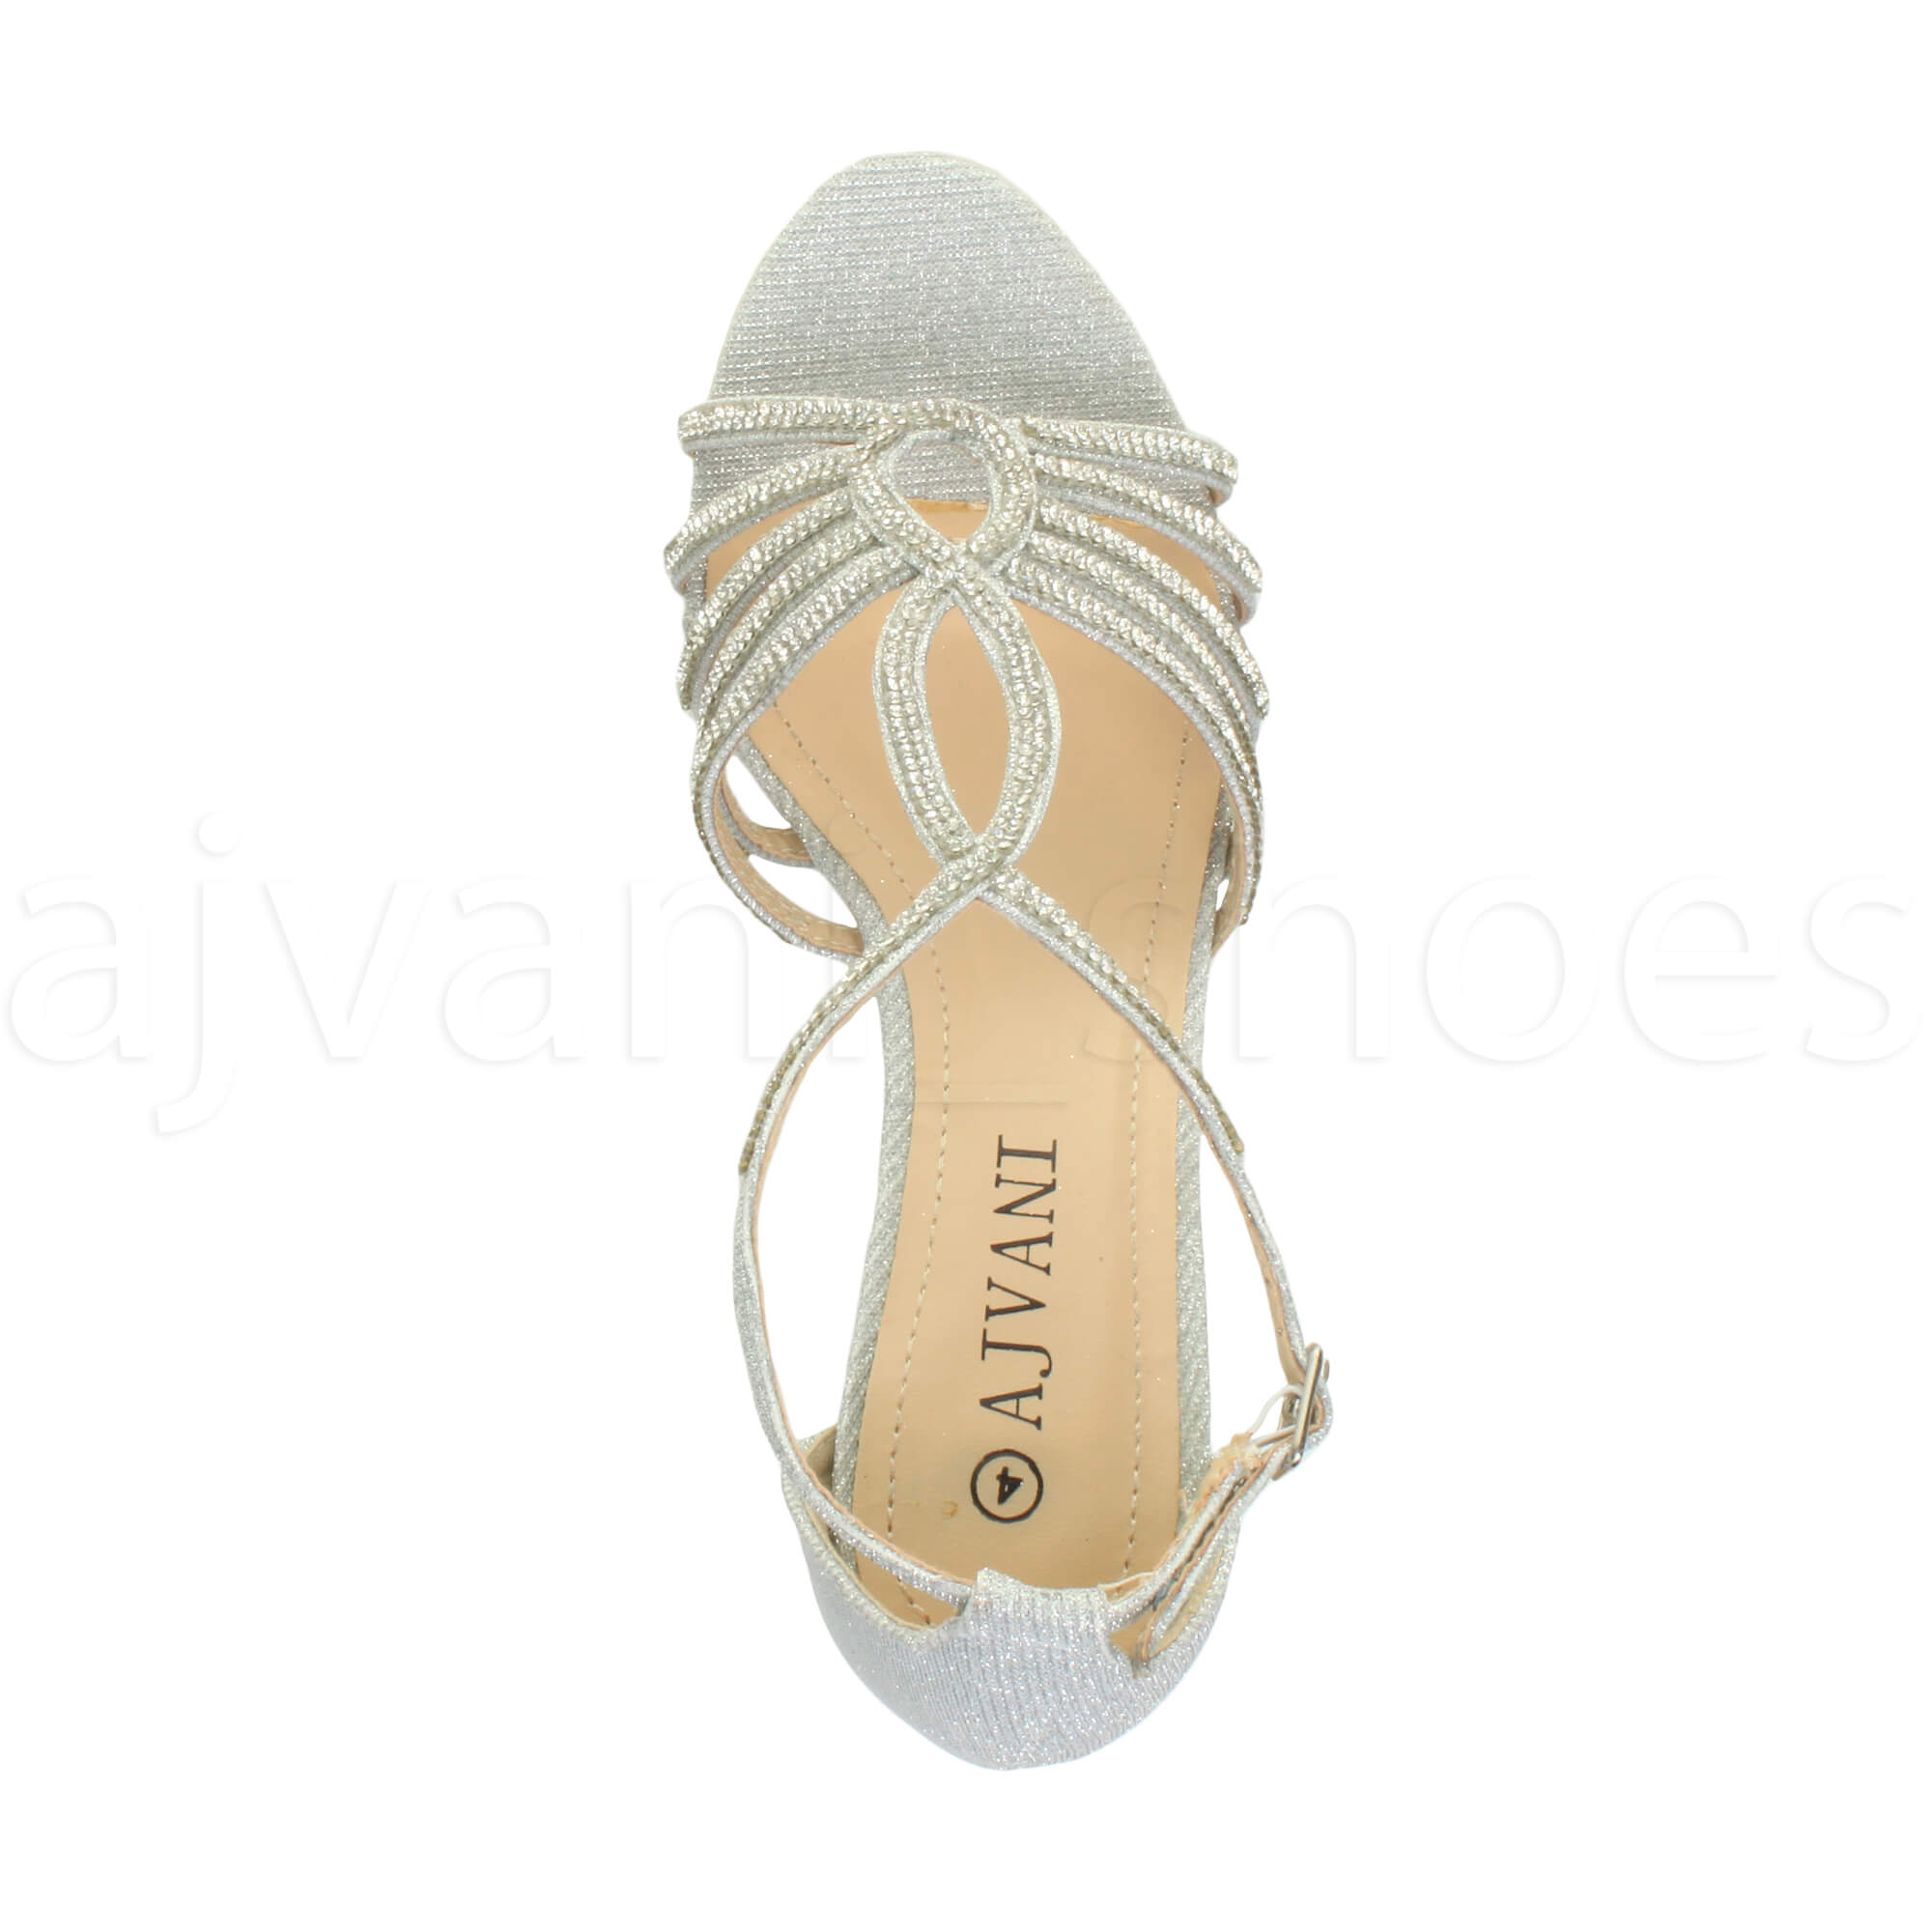 WOMENS-LADIES-MID-HEEL-STRAPPY-DIAMANTE-WEDDING-EVENING-T-BAR-SANDALS-SHOES-SIZE thumbnail 25